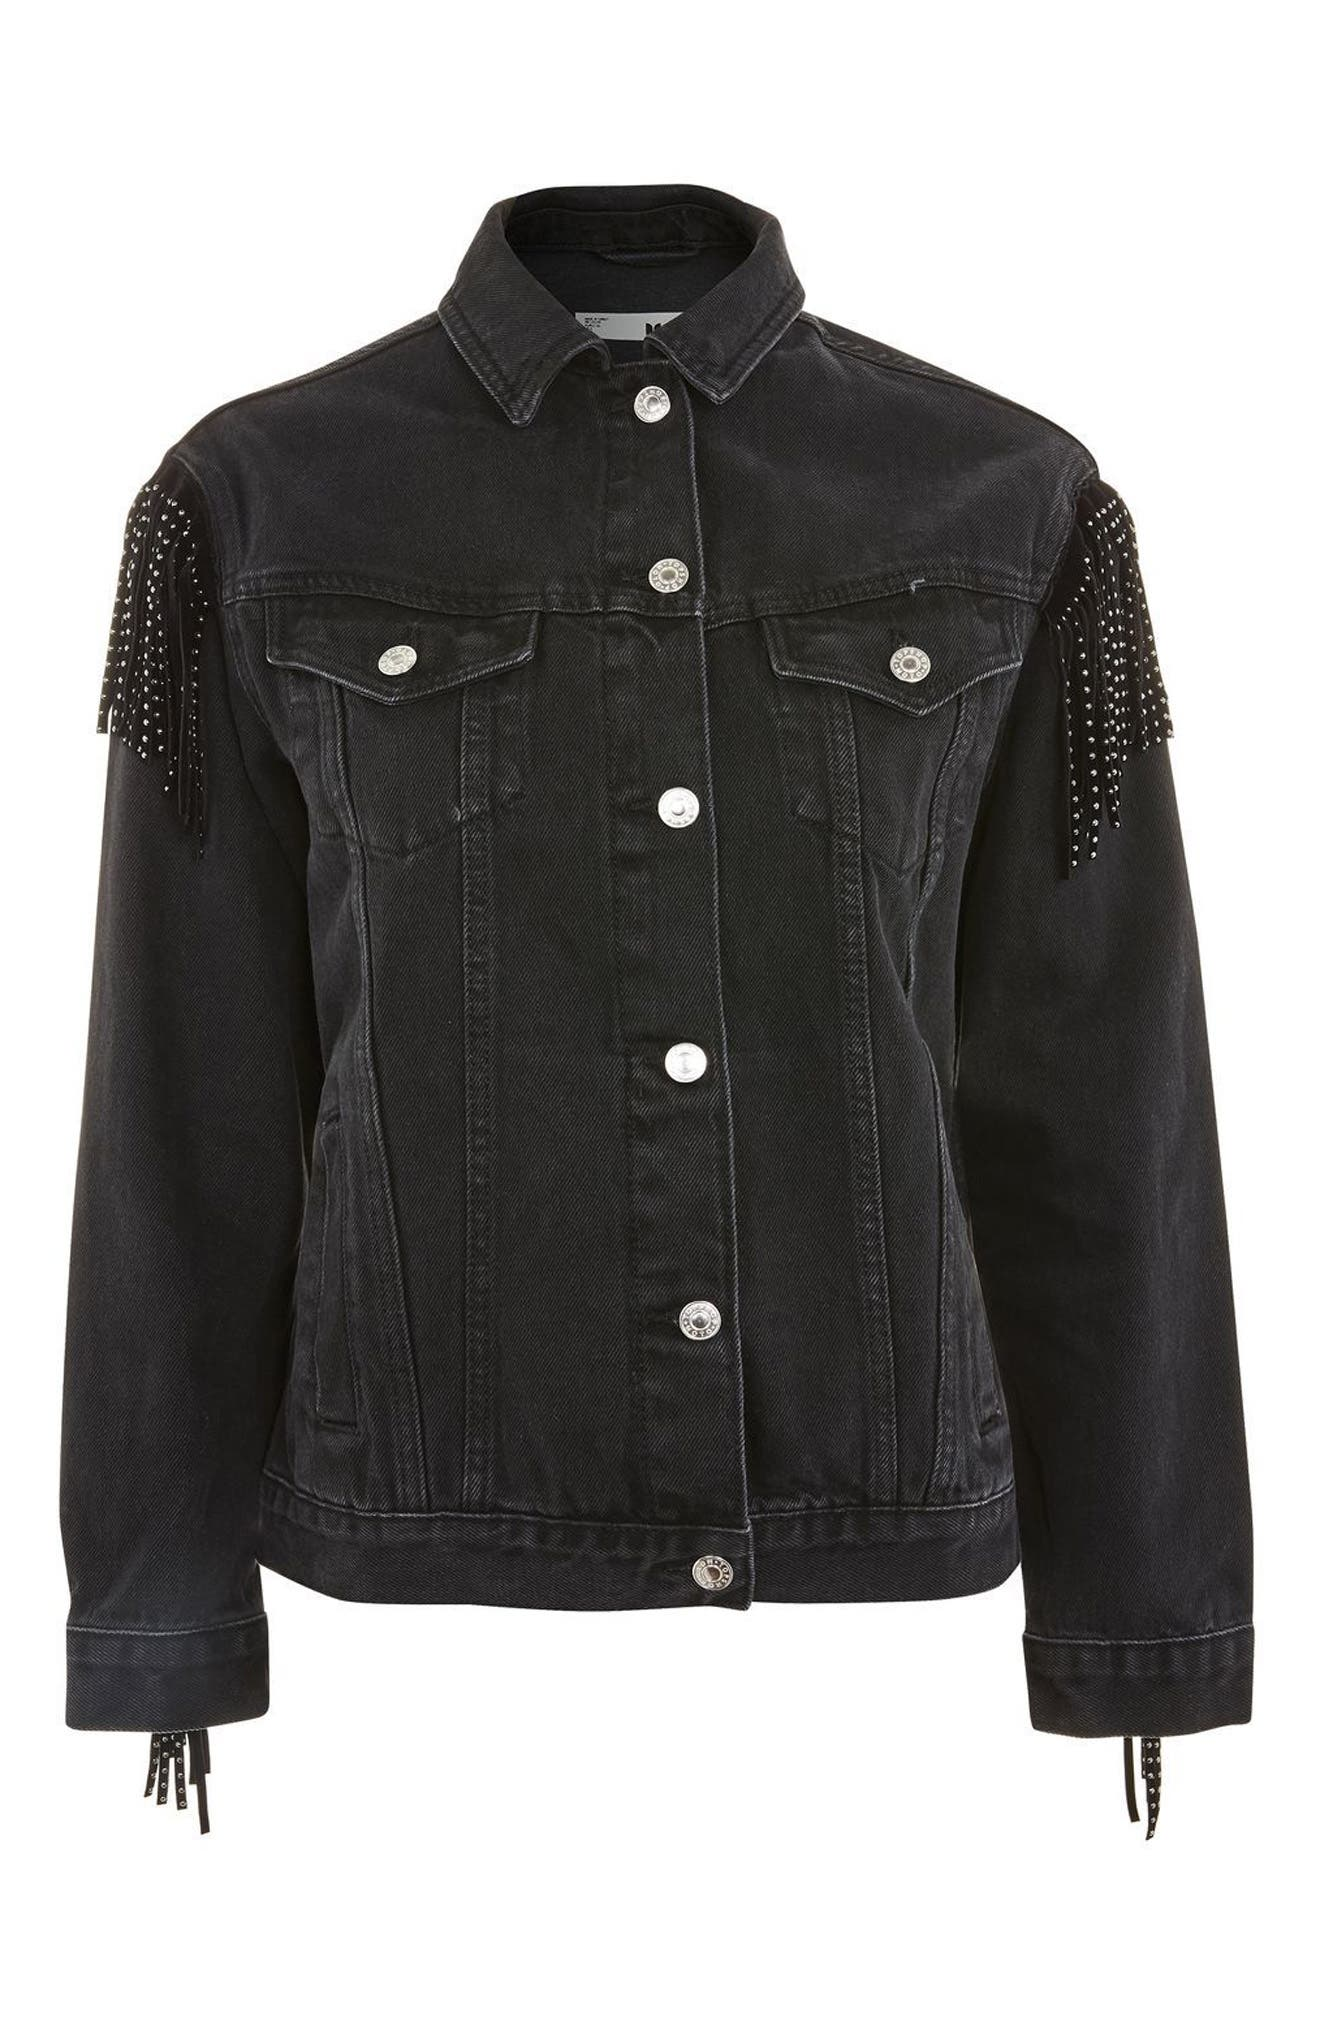 Alternate Image 1 Selected - Topshop Stud Fringe Denim Jacket